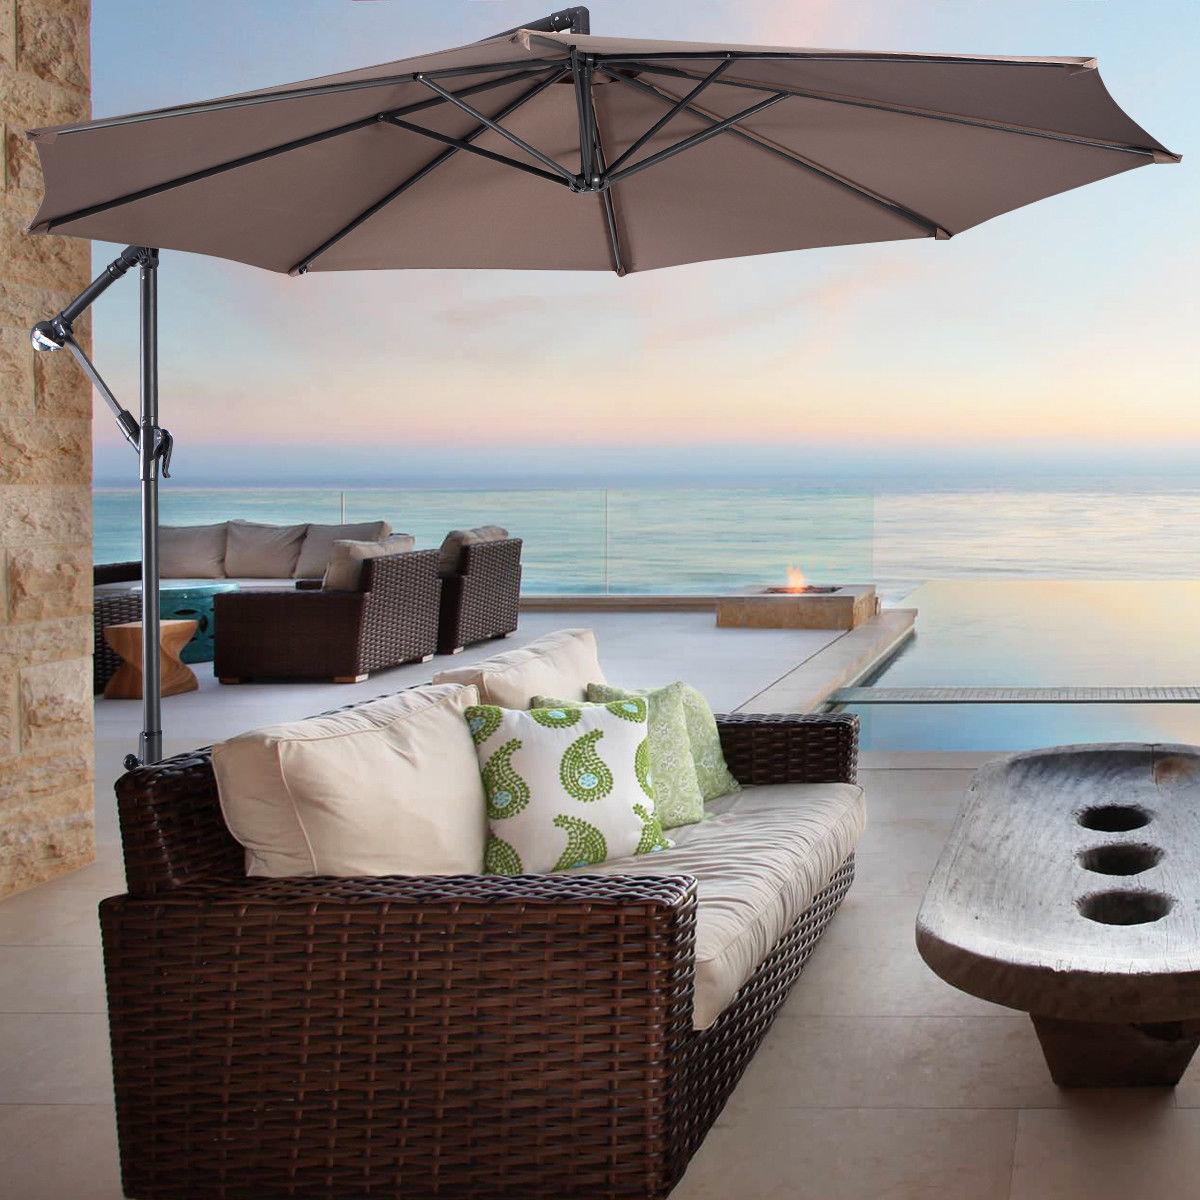 Costway 10' Hanging Umbrella Patio Sun Shade Offset Outdoor Market W/t Cross Base (Tan)